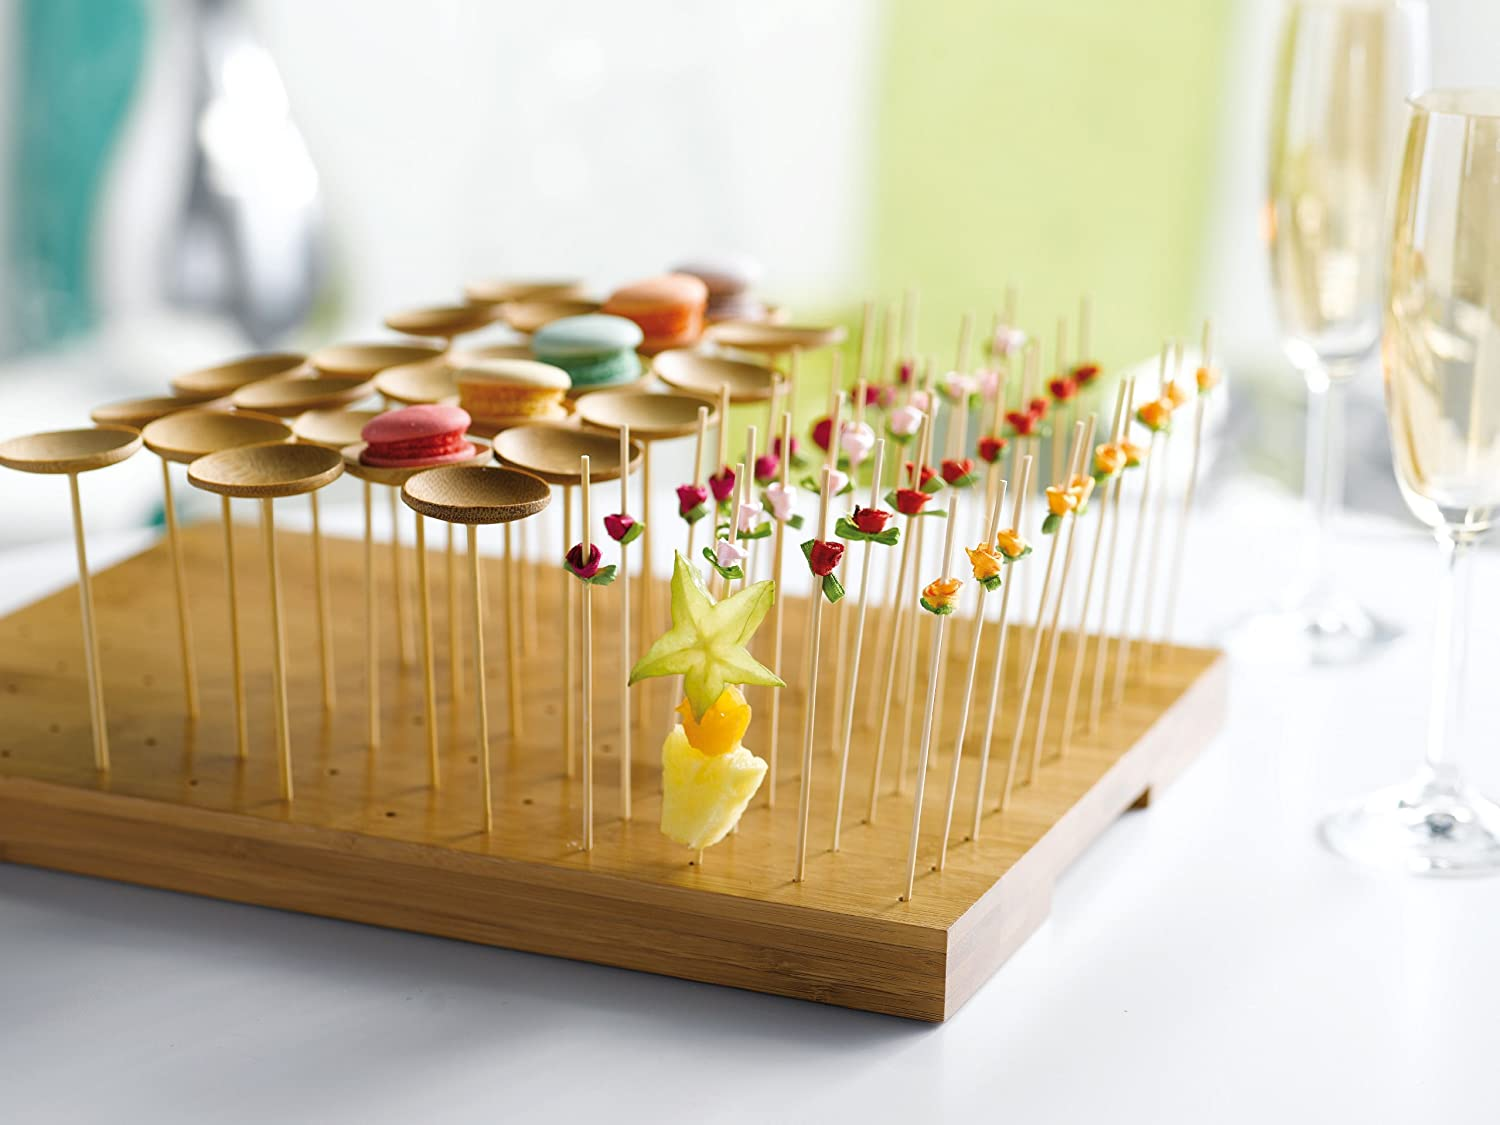 Case of 144 Drinks Bamboo Mini Dish with Pick Skewer Biodegradable Wood Sticks for Appetizers Length: 3.9 Dish: 1.6 PacknWood 209BBTHANI